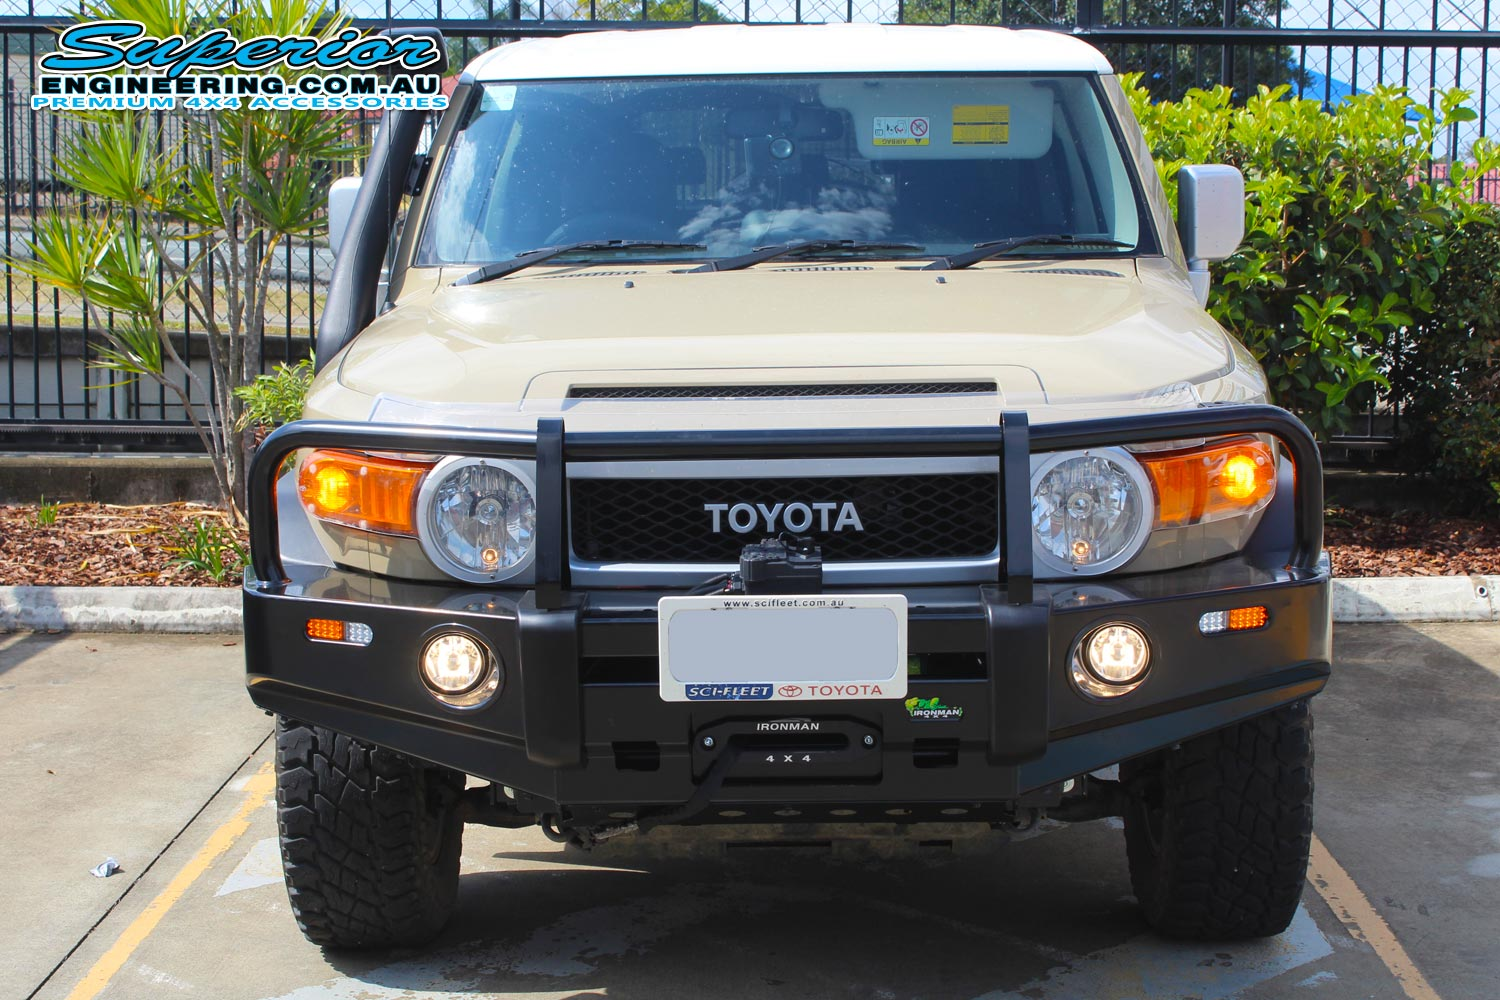 Front view of a brown Toyota FJ Cruiser fitted with a Ironman 4x4 Black Commercial Bullbar, Monster Winch and TJM Snorkel